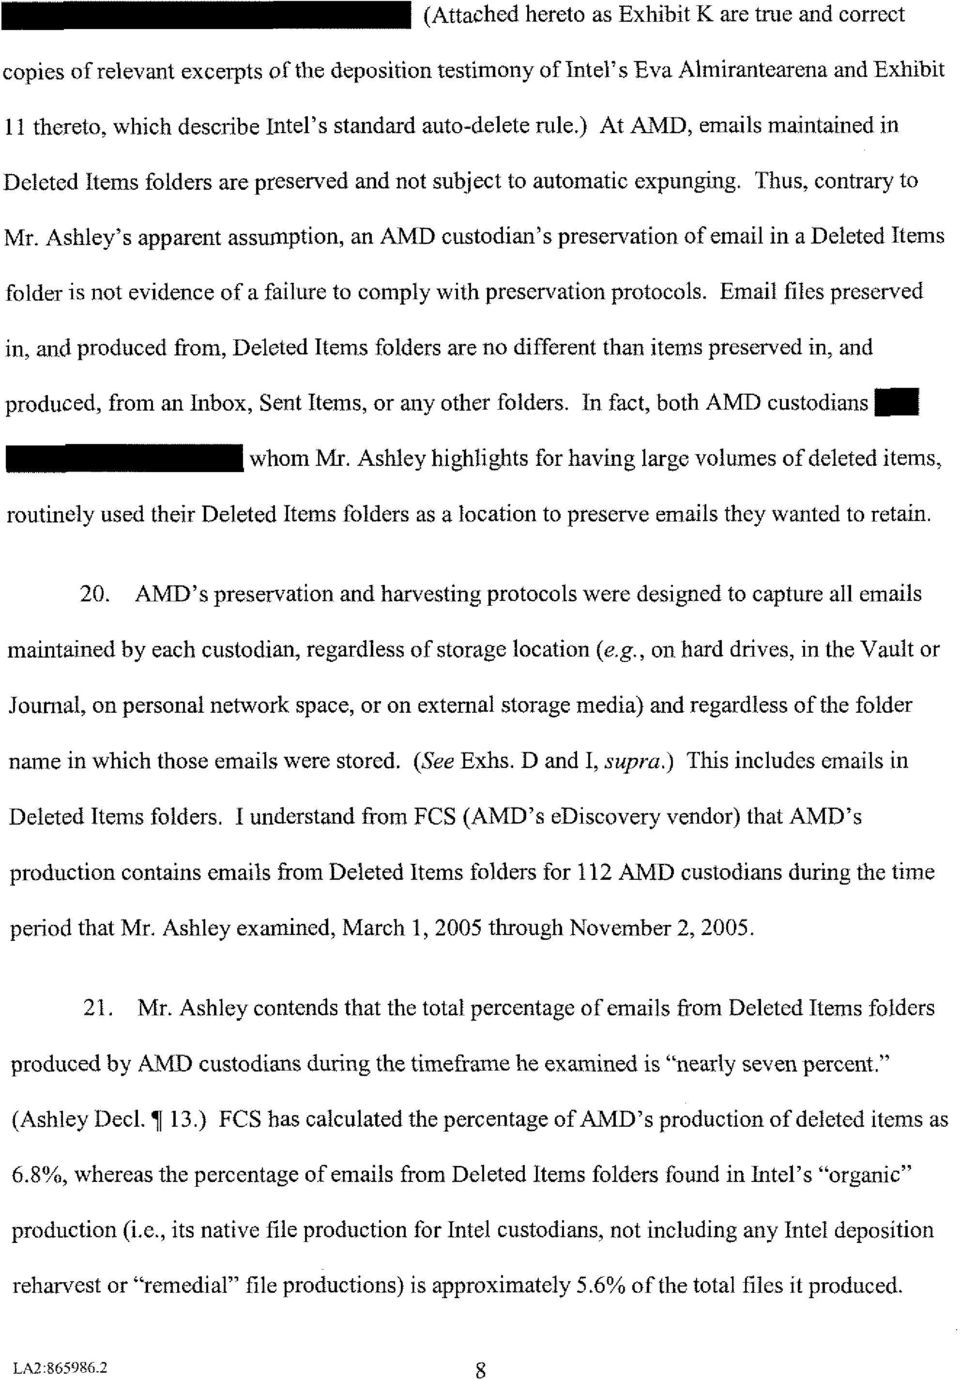 Ashley's apparent assumption, an AMD custodian's preservation of email in a Deleted Items folder is not evidence of a failure to comply with preservation protocols.